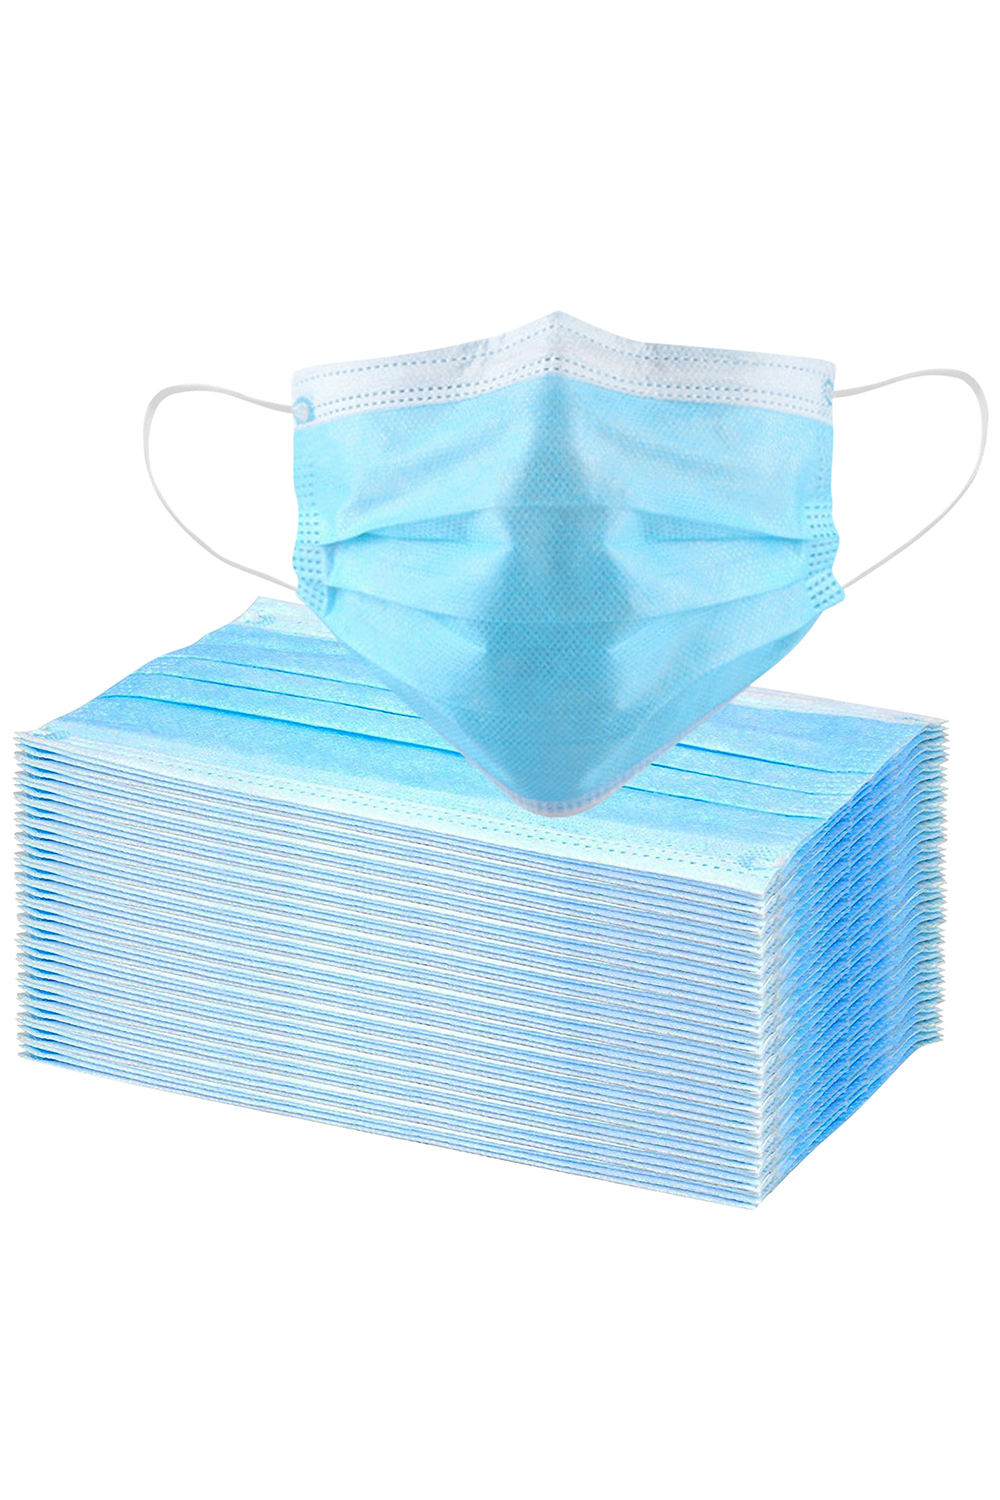 https://www.iyasson.com/collections/sanitary-masks/products/50-pcs-disposable-face-masks-with-elastic-ear-loop-3-ply-for-blocking-dust-air-pollution-protection